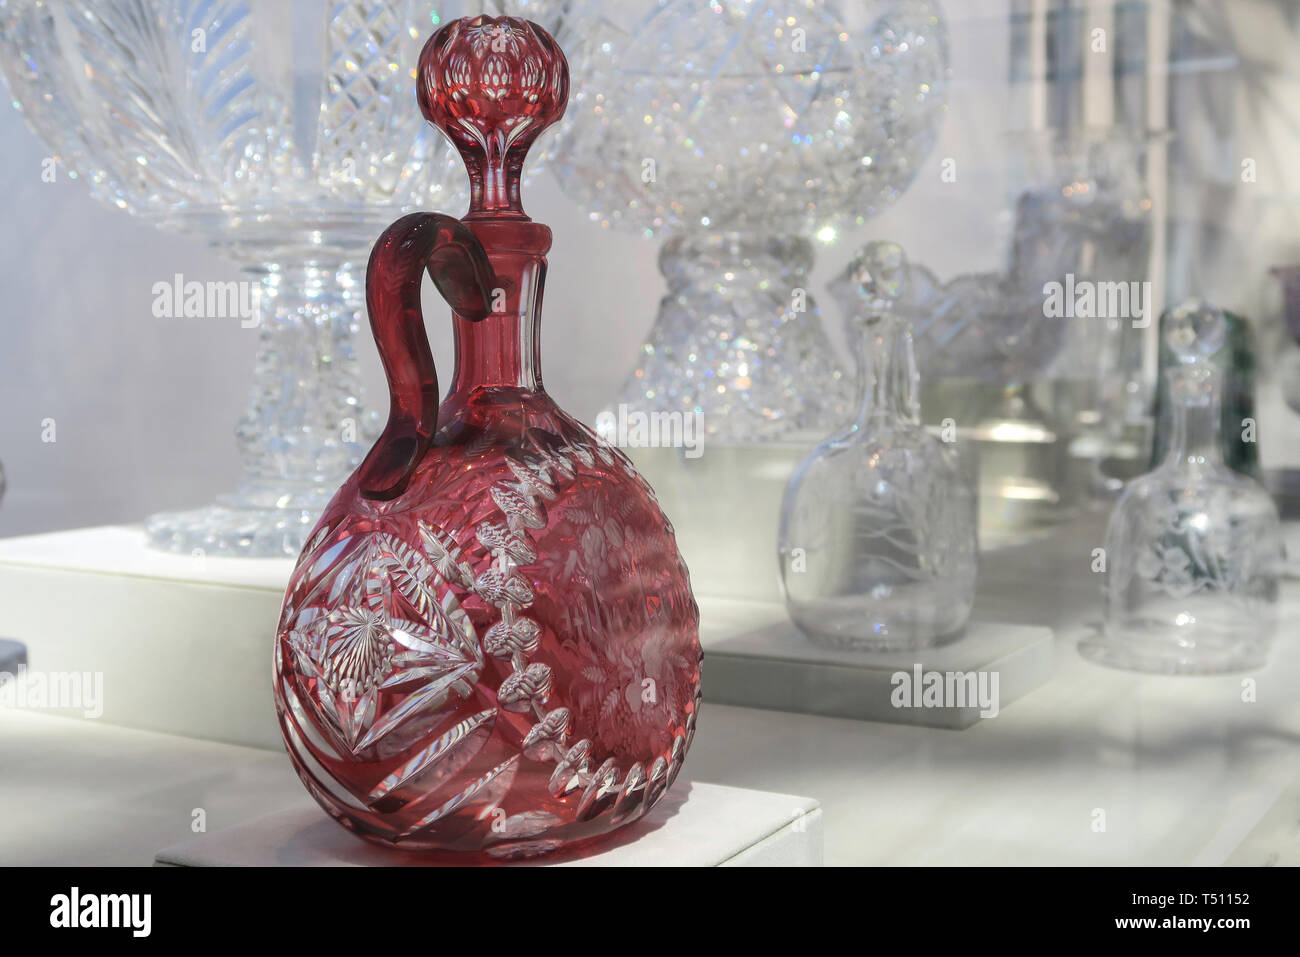 Cut and Engraved Luxury Glass Exhibit at the Metropolitan Museum of Art in New York City, USA - Stock Image